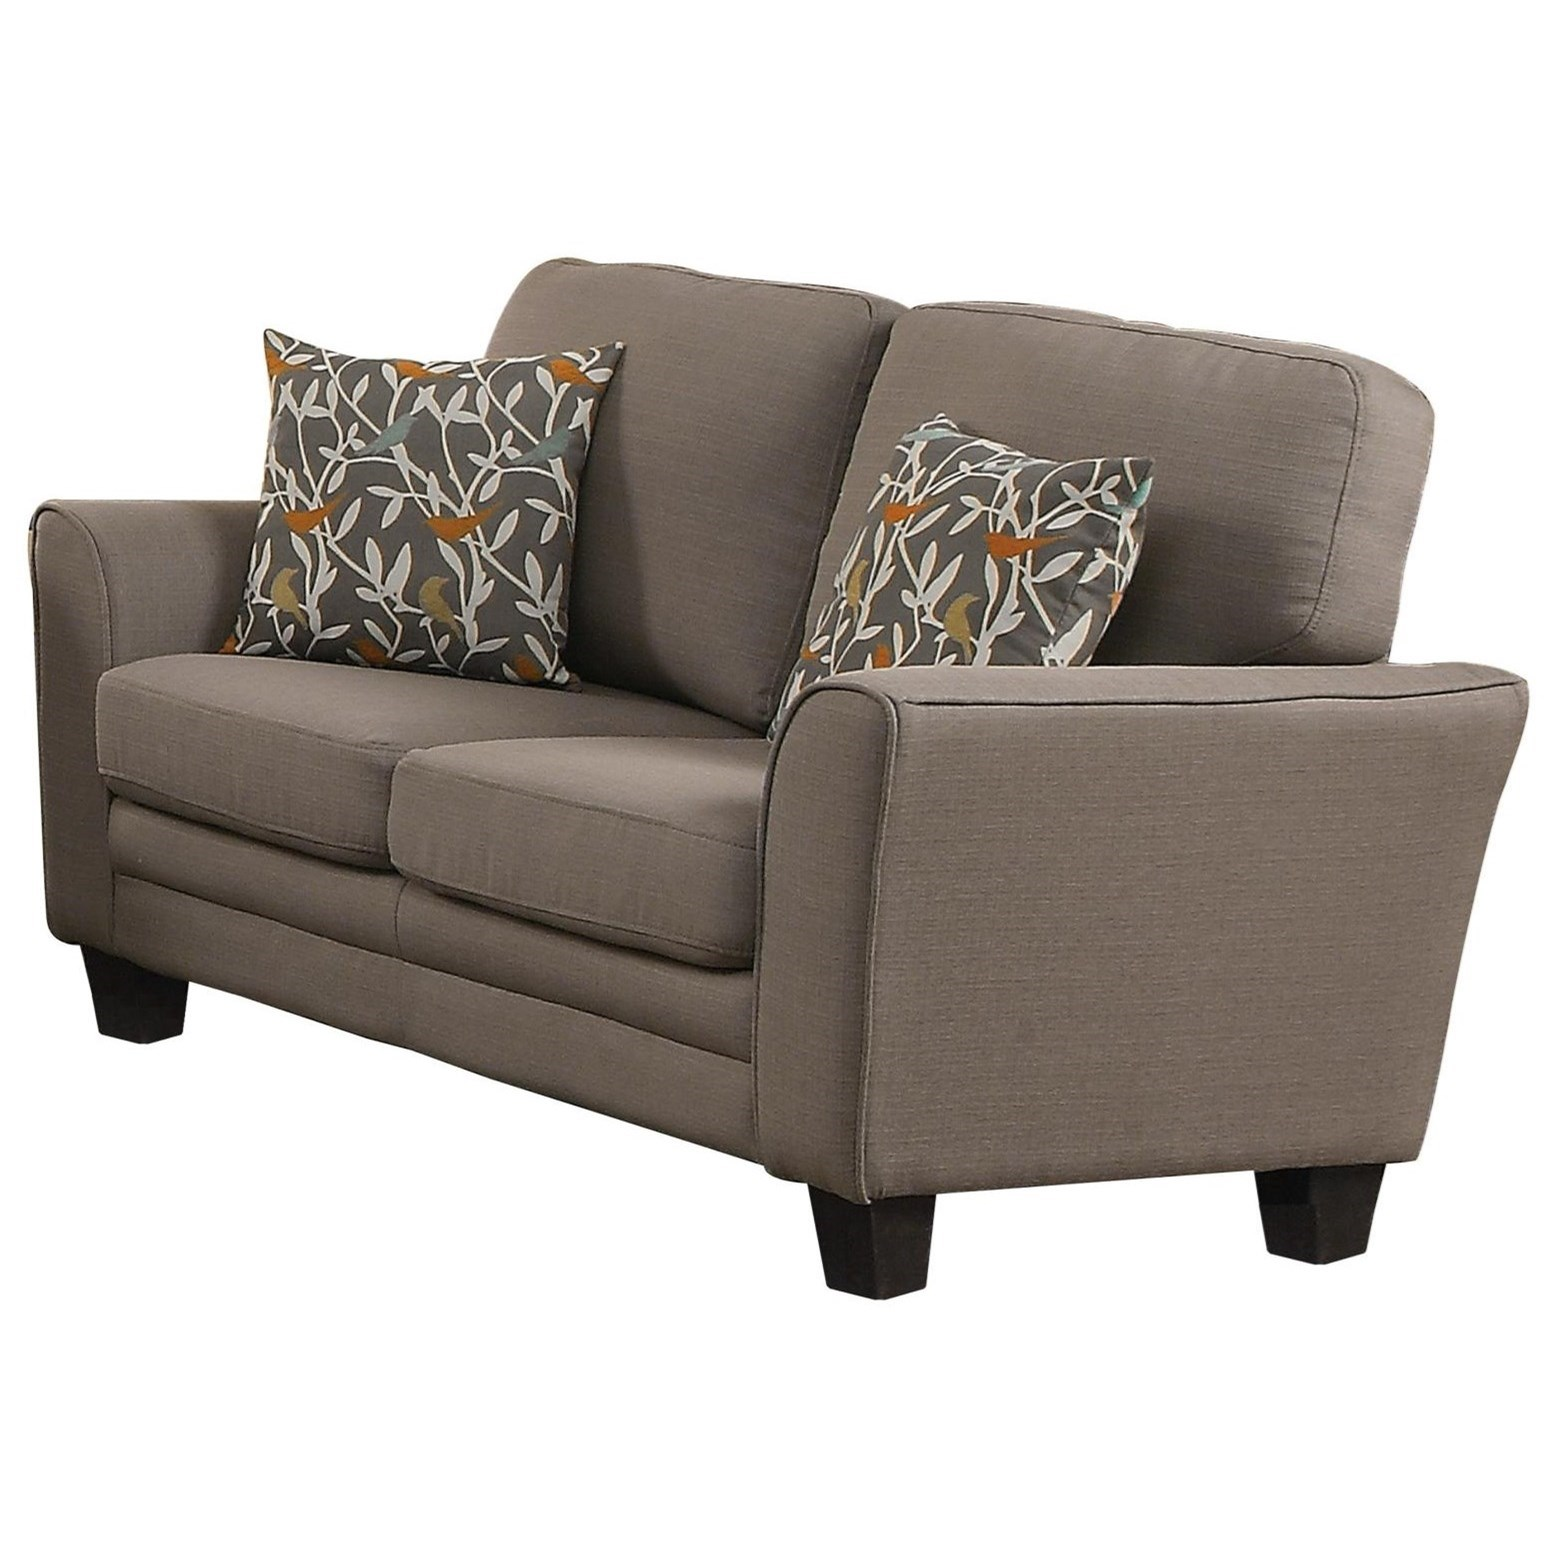 Adair Loveseat by Homelegance at Value City Furniture